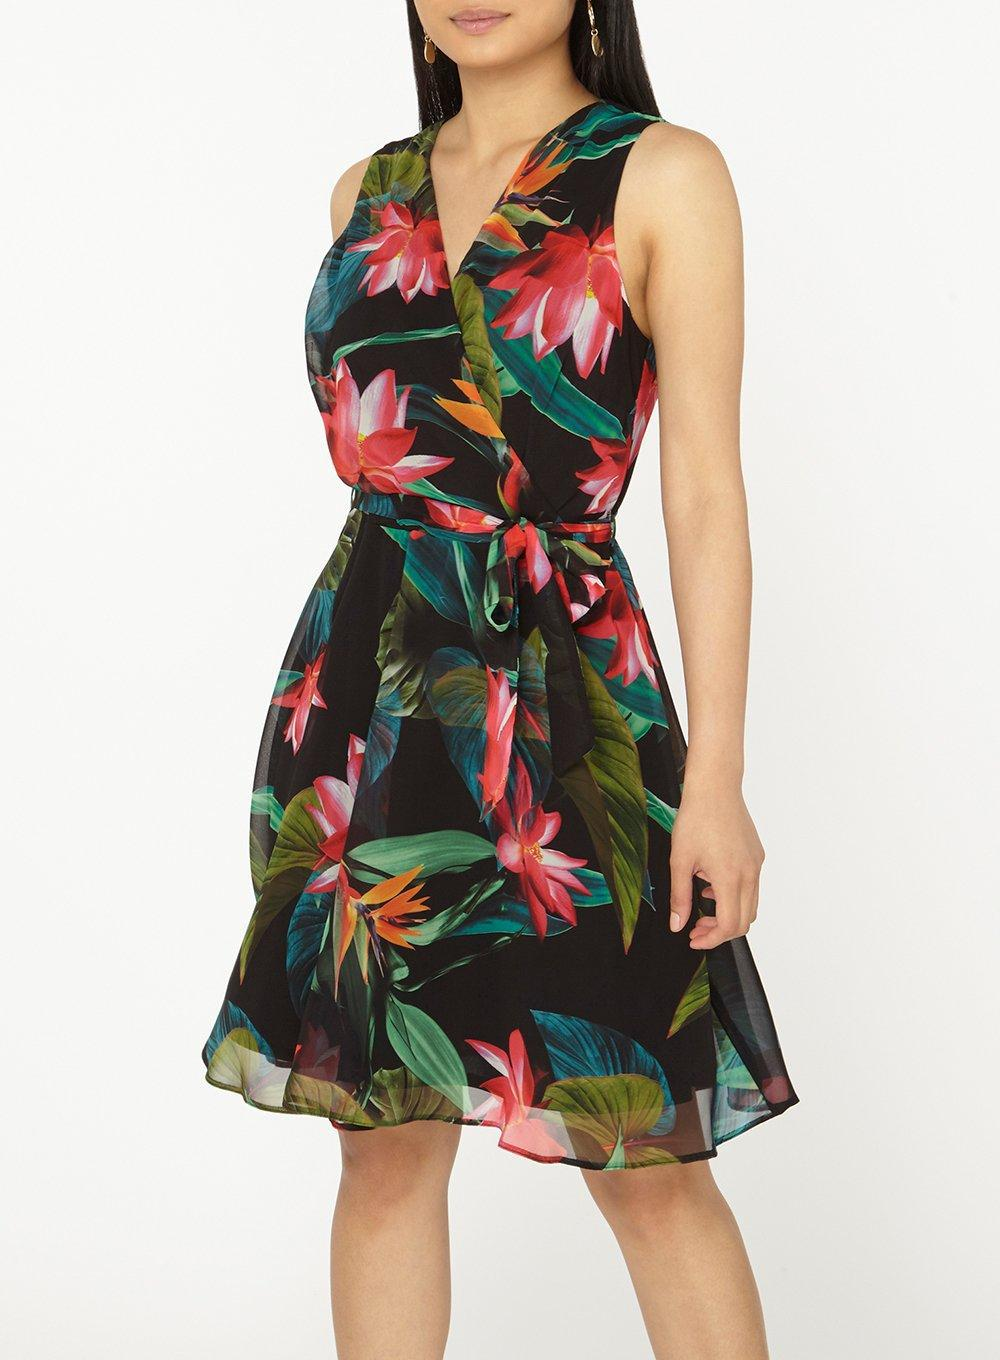 c5b768c2cd66 Gallery. Previously sold at: Dorothy Perkins · Women's Tropical Print  Dresses ...